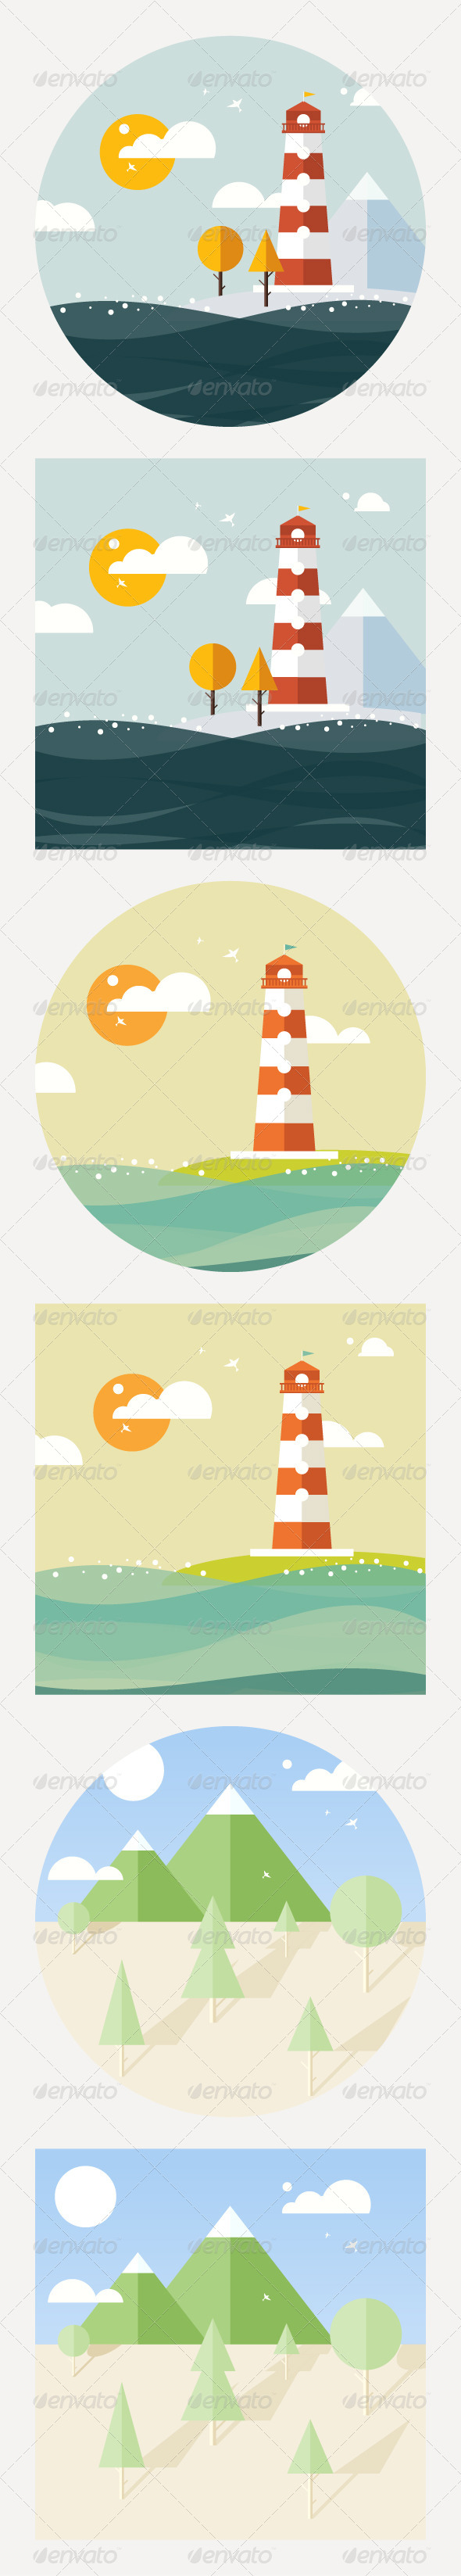 Hipster Vector Lighthouse Flat Style - Landscapes Nature